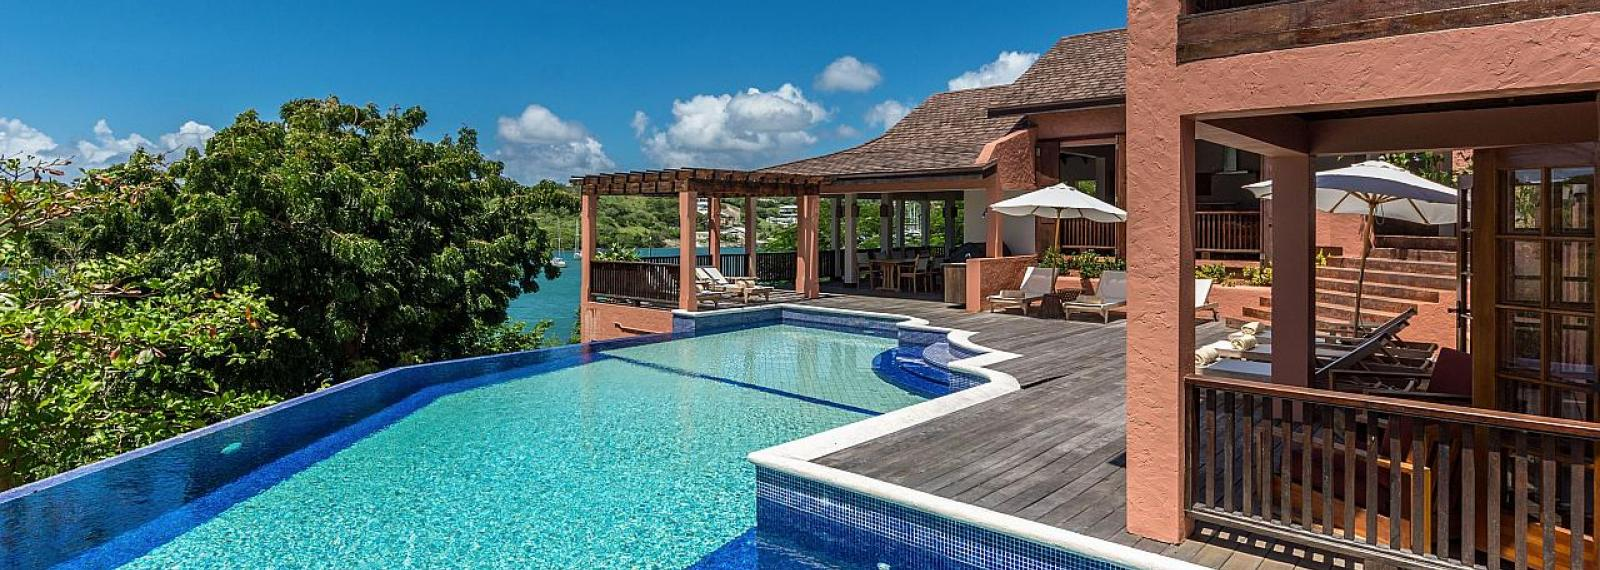 Pool House at Calabash